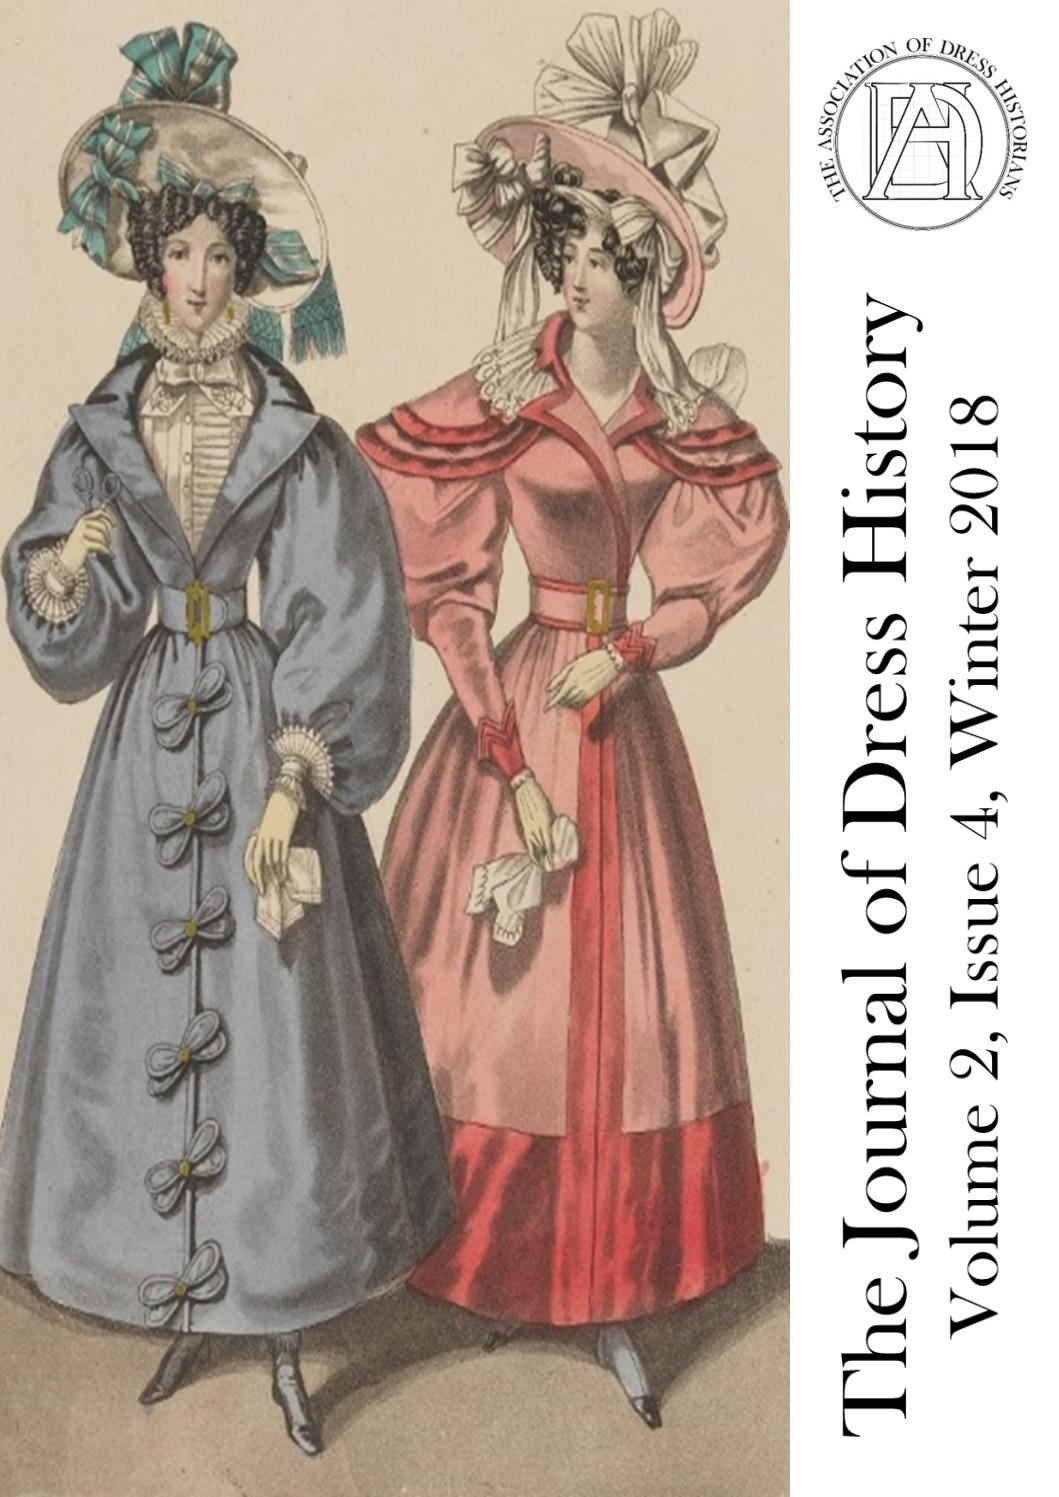 The Journal Of Dress History Volume 2 Issue 4 Winter 2018